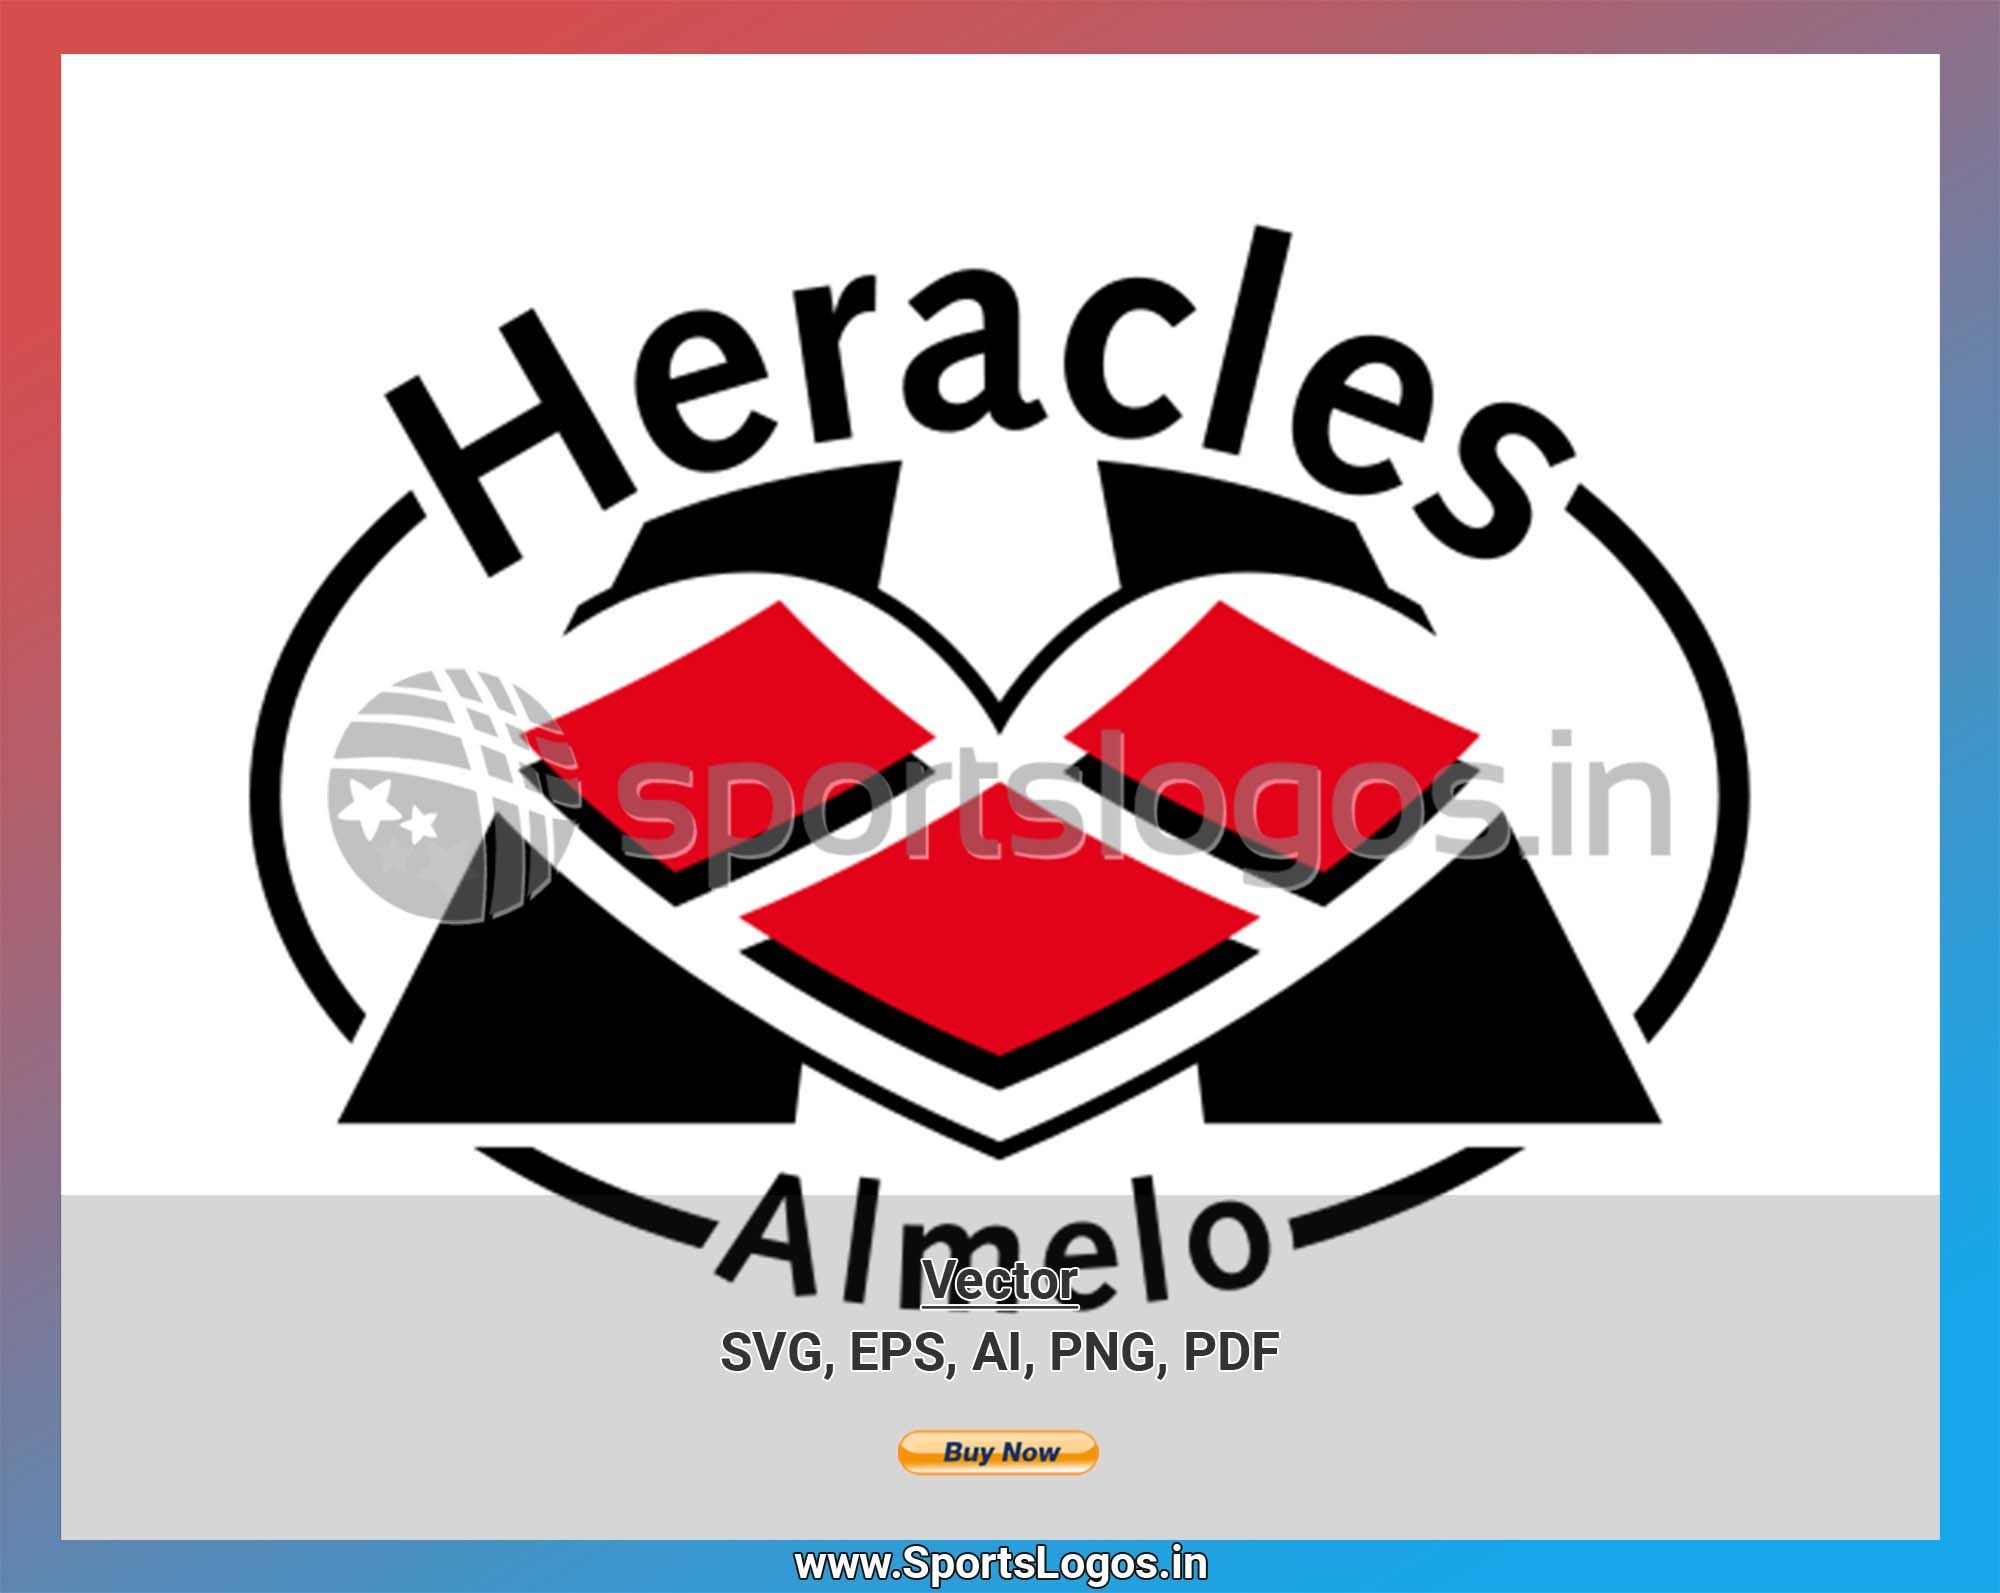 Heracles Almelo Soccer Sports Vector Svg Logo In 5 Formats Spln001826 Sports Logos Embroidery Vector For Nfl Nba Nhl Mlb Milb And More In 2020 Embroidery Logo Sports Logo Sport Soccer